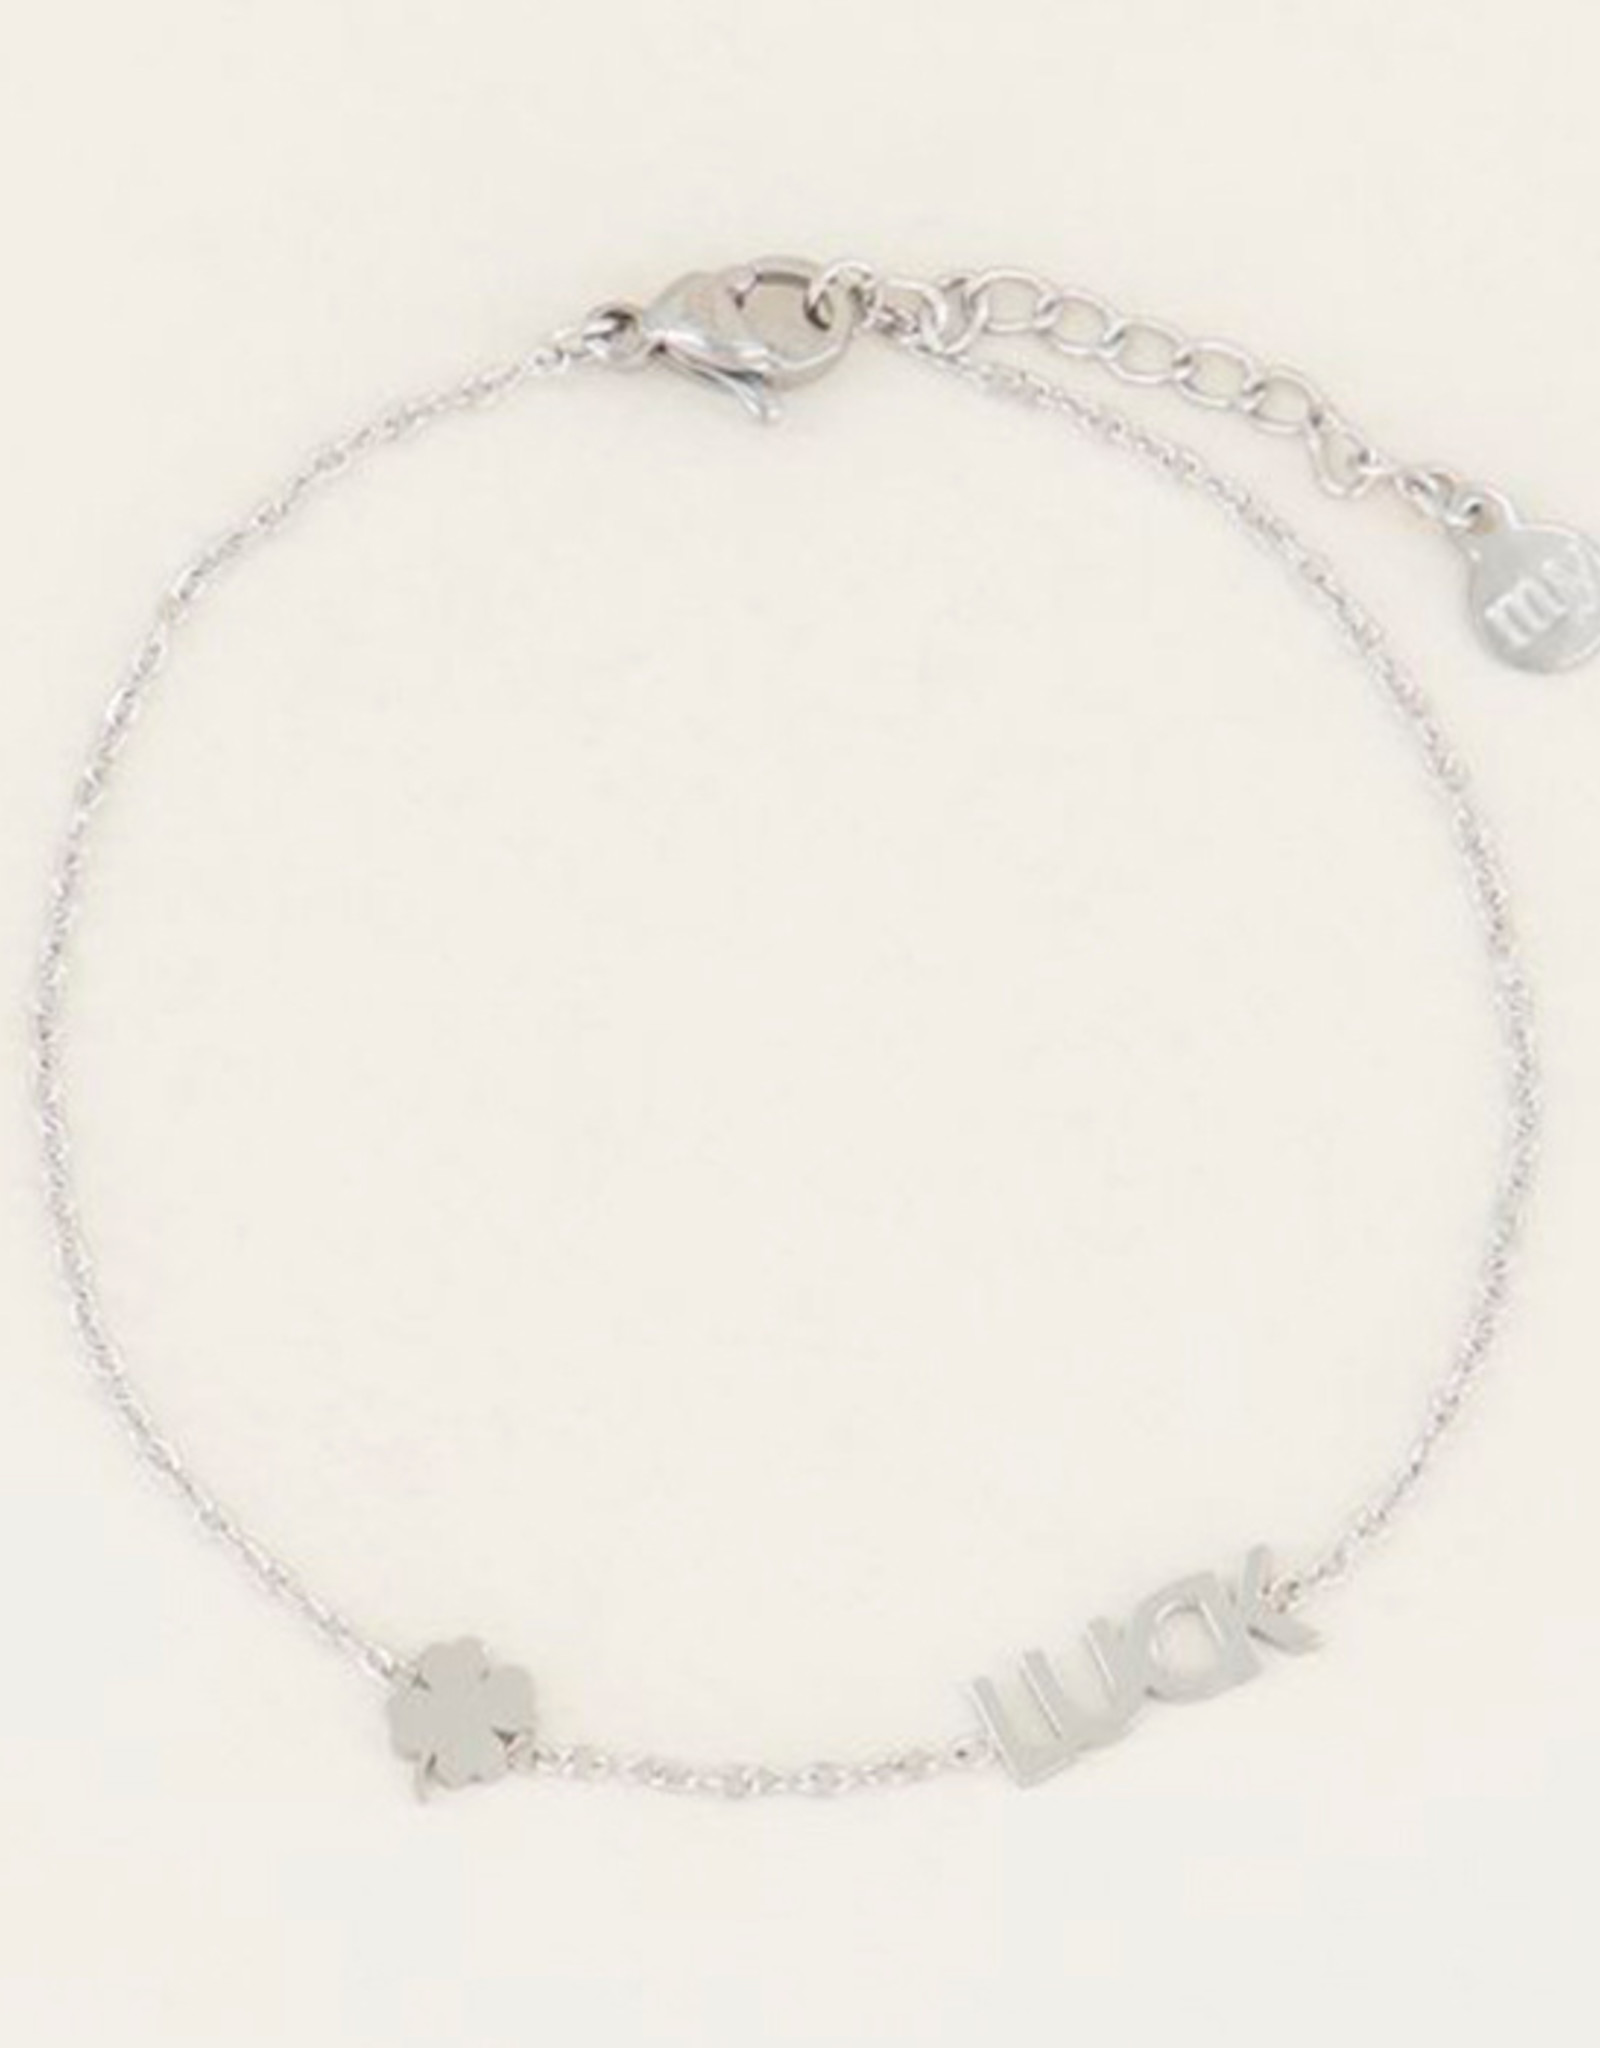 My Jewelry Armband Luck & Clover-silver